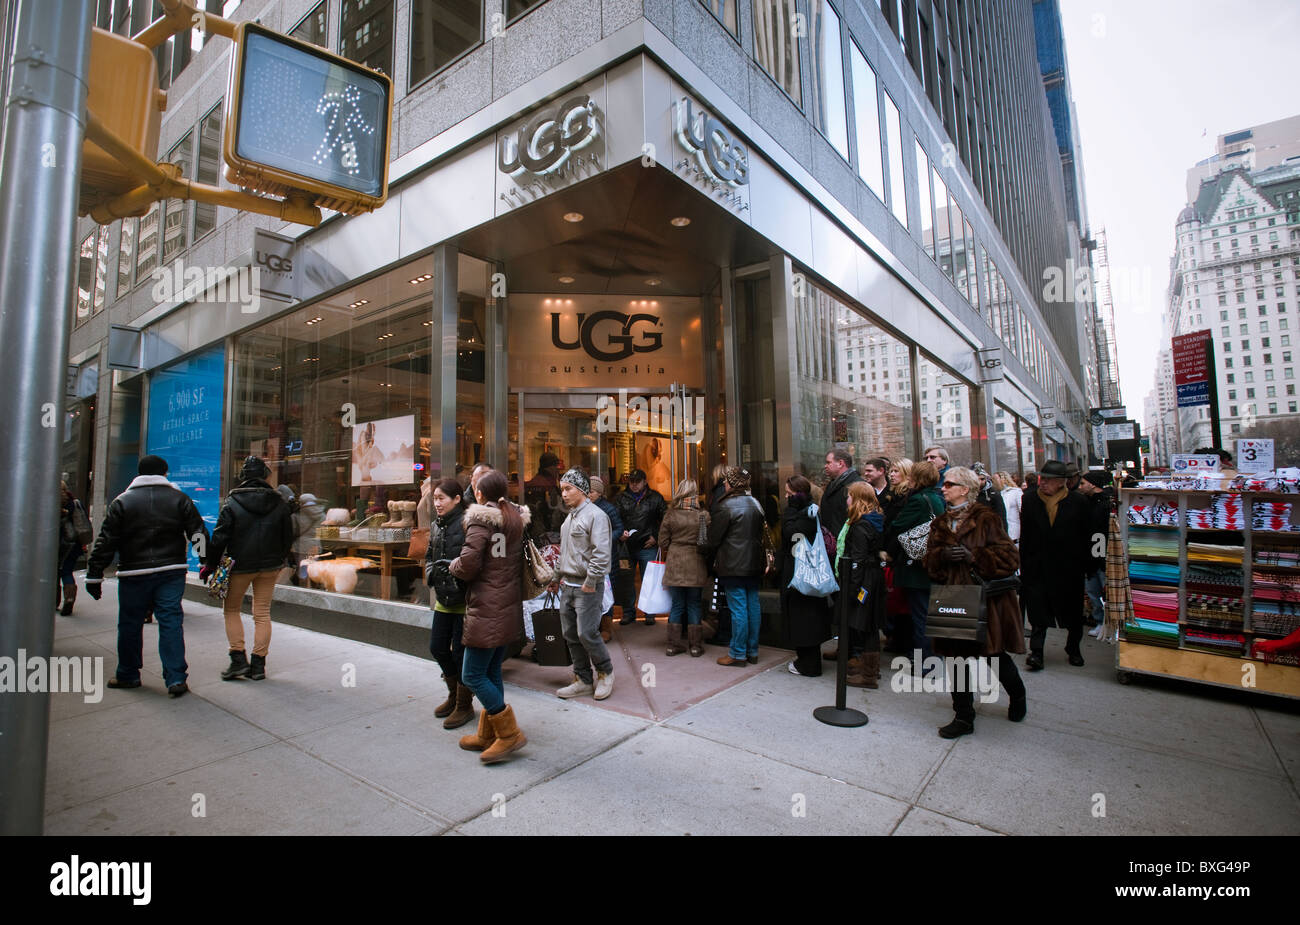 uggs shops new york